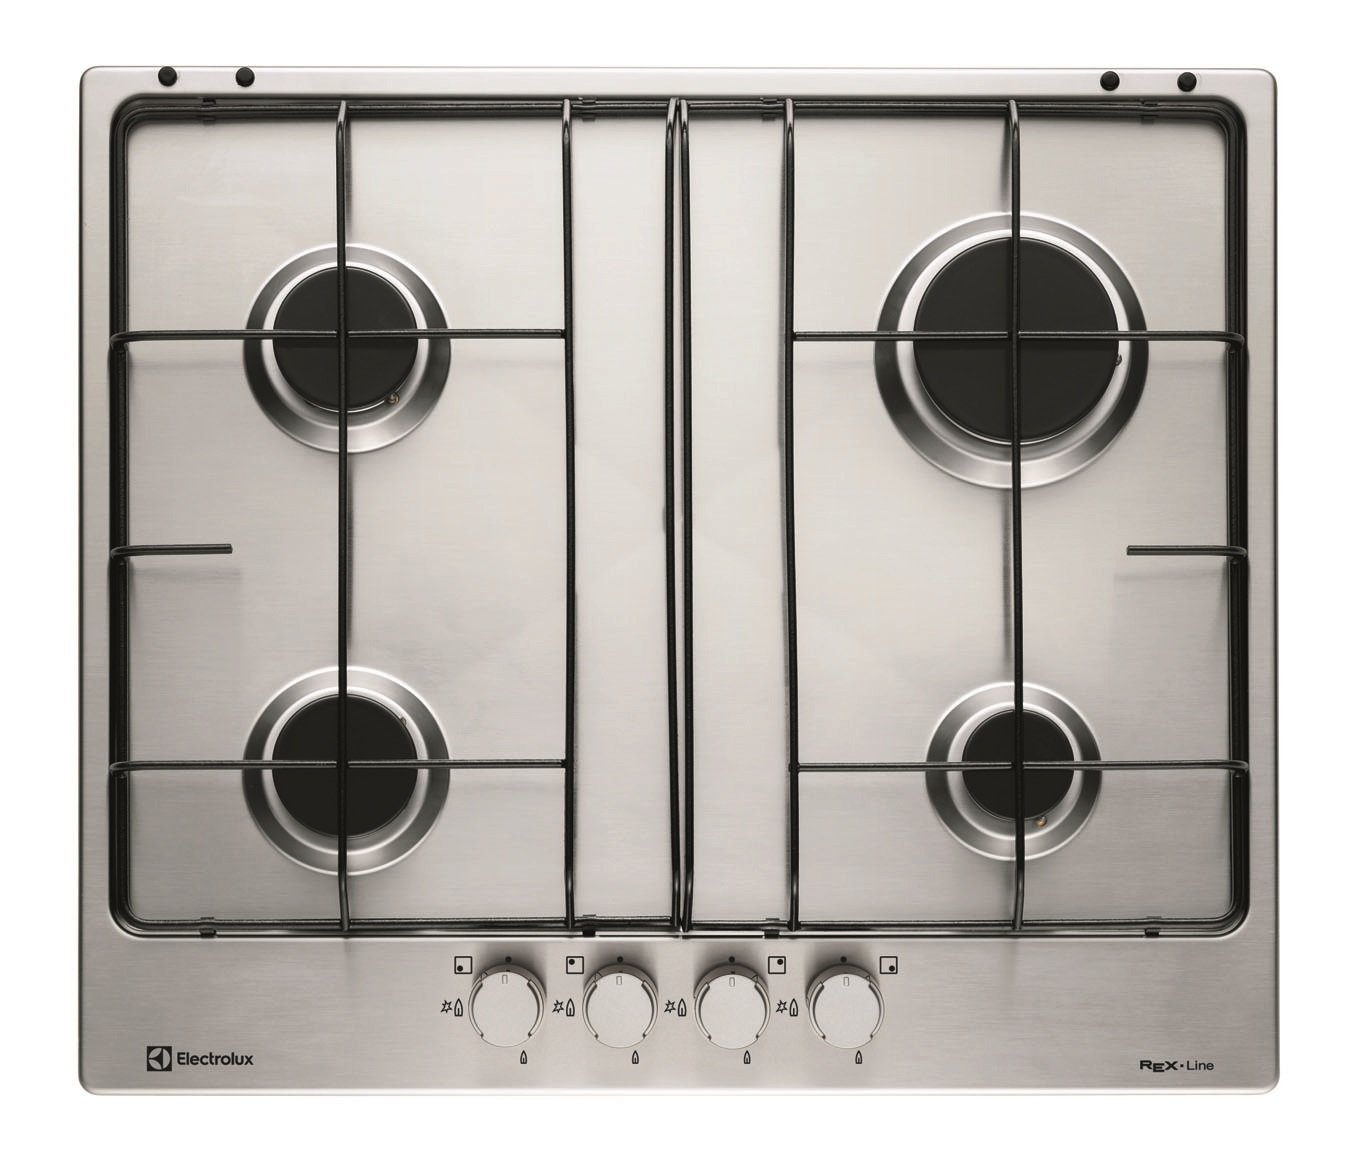 Electrolux RGG 6242 NVX built-in Gas Stainless steel - Hobs (Built ...